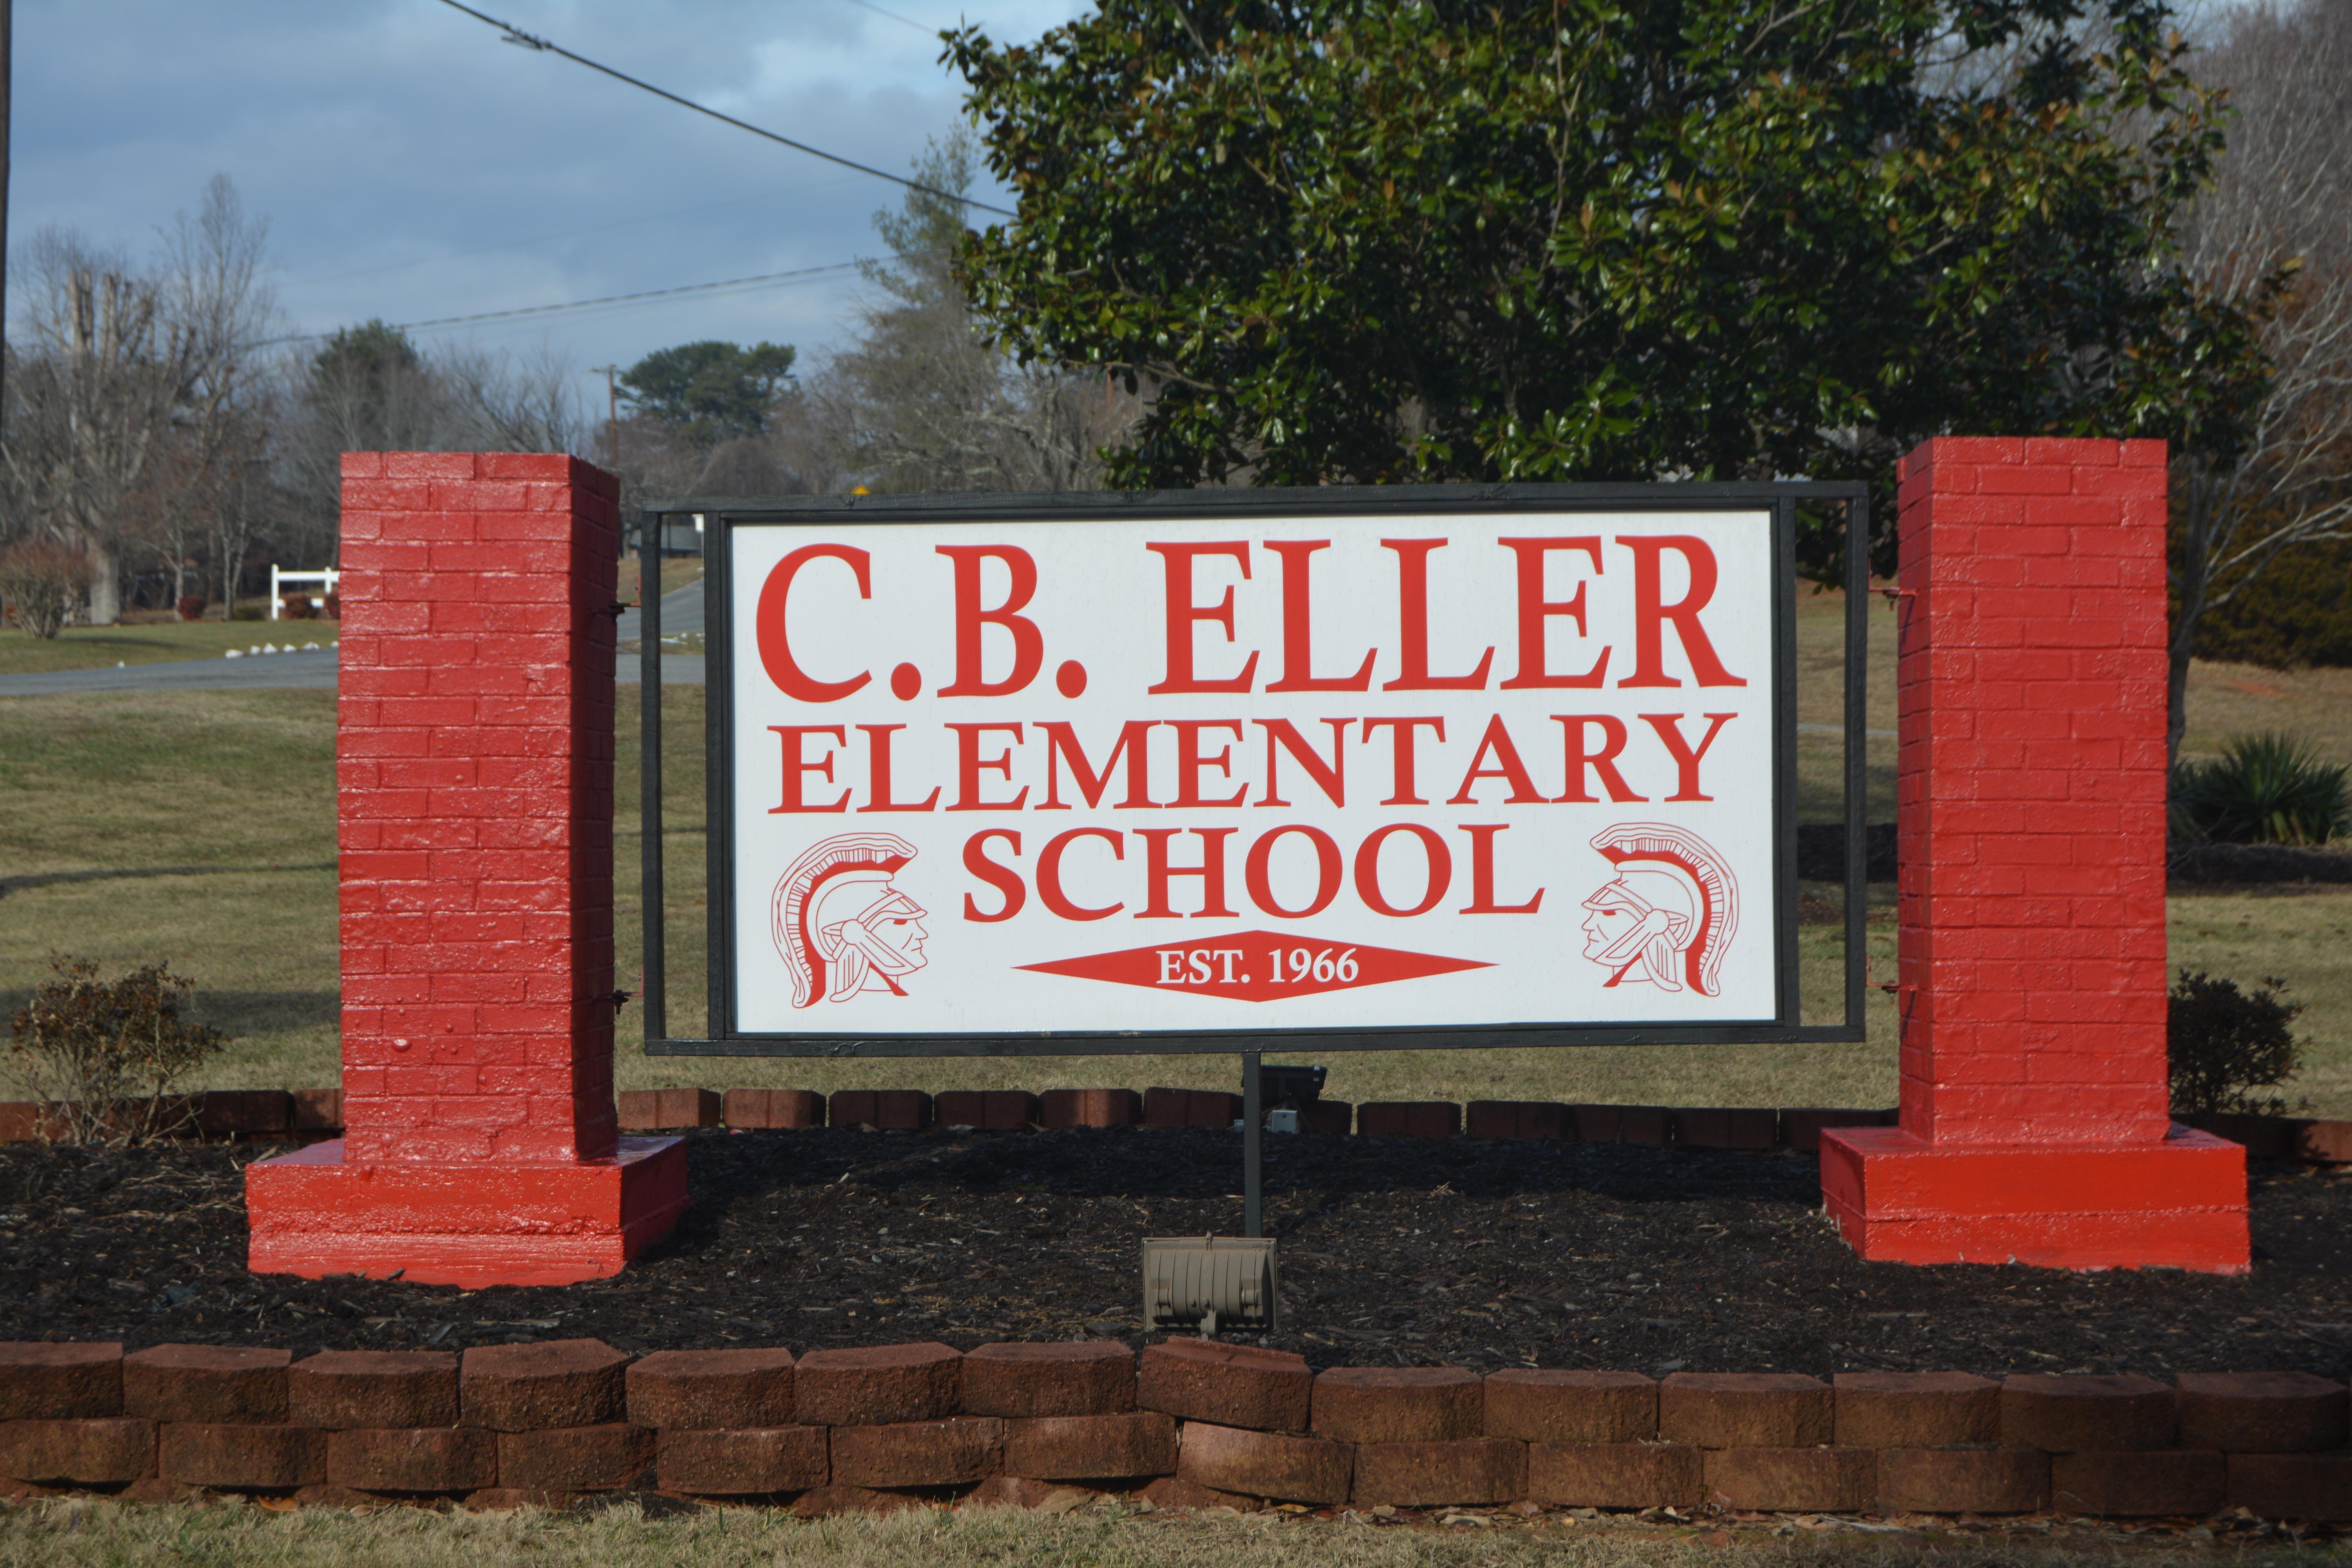 Welcome to C.B. Eller Elementary School Image